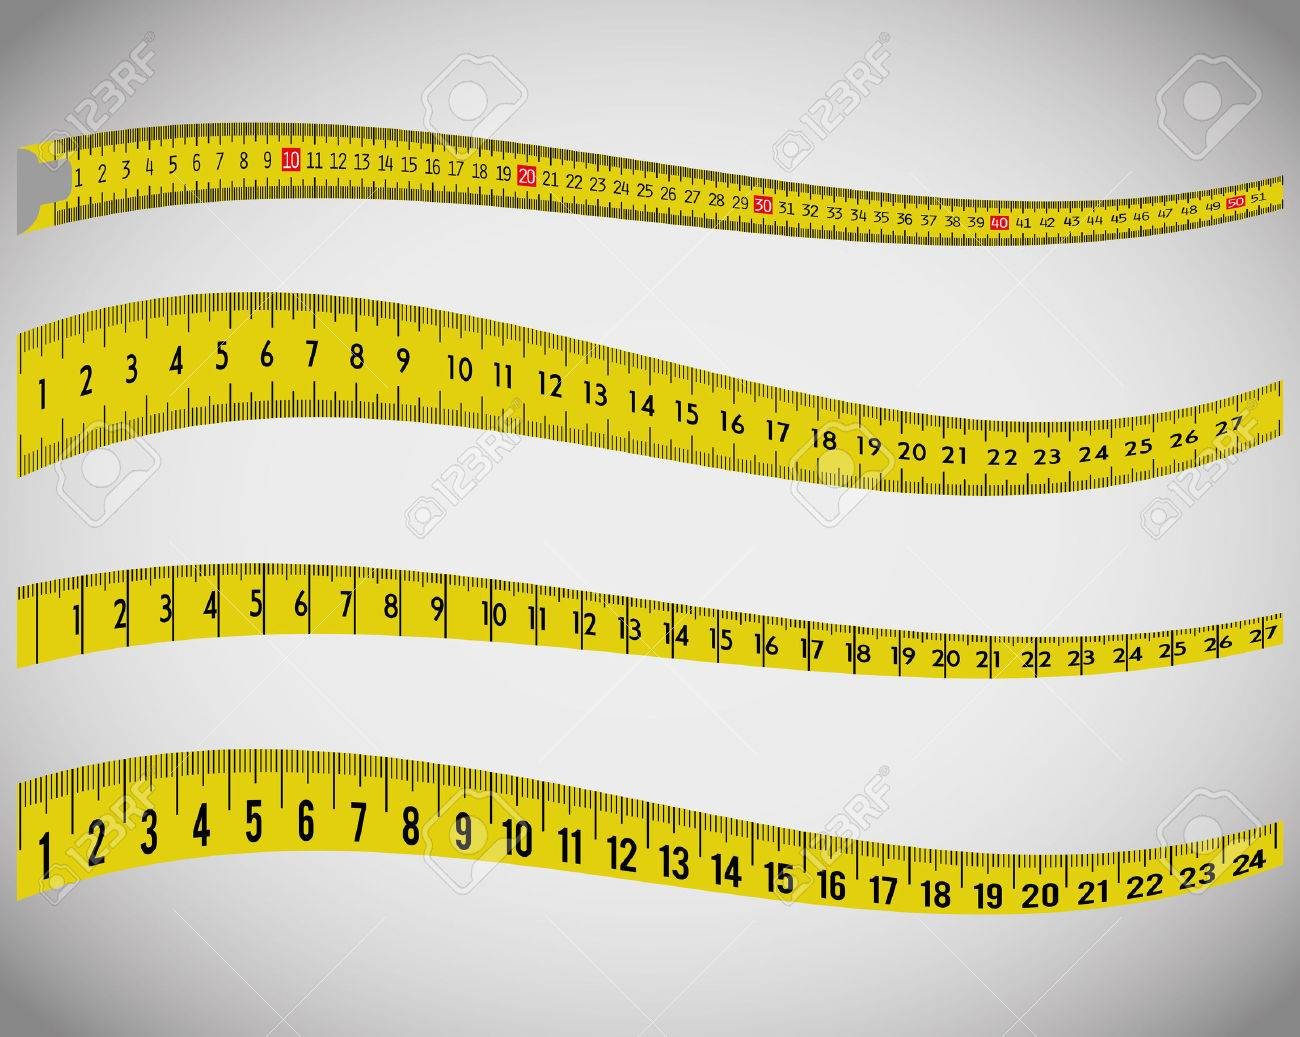 Measure tape and dieting graphic design, vector illustration eps10 - 50789834